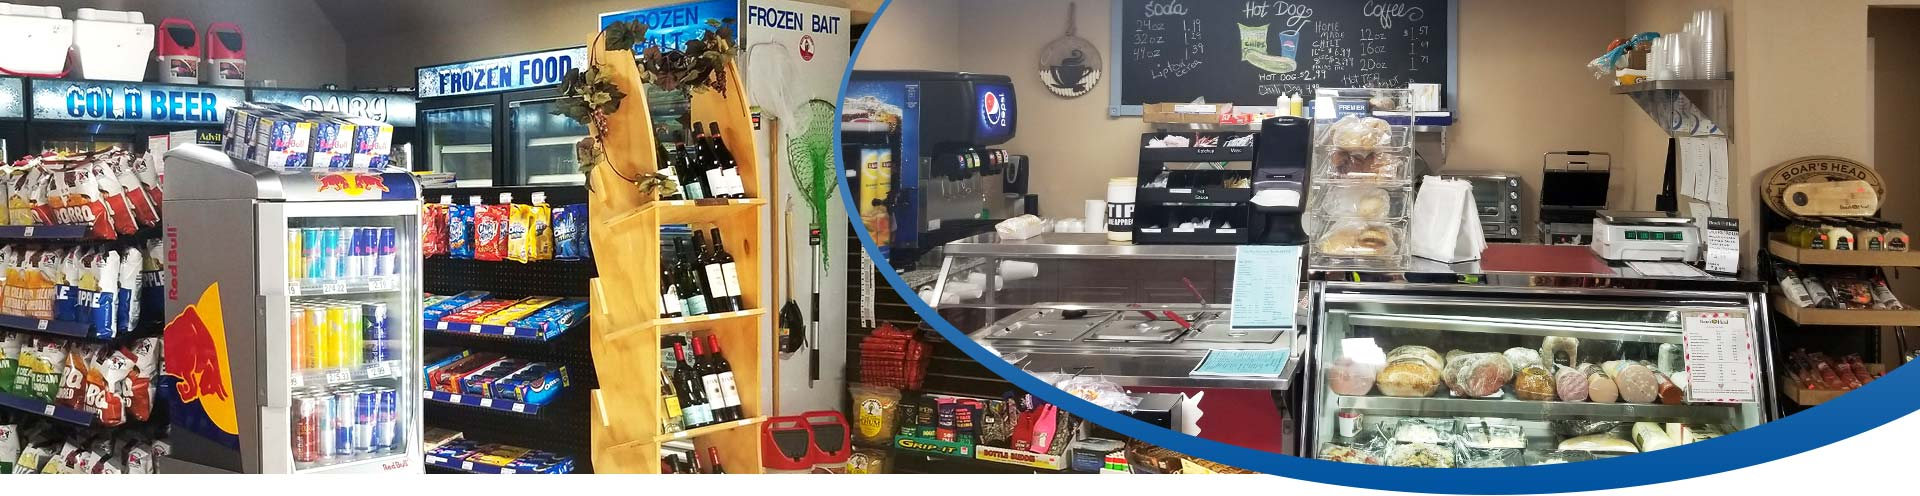 two photos of the store interior, products and deli counter